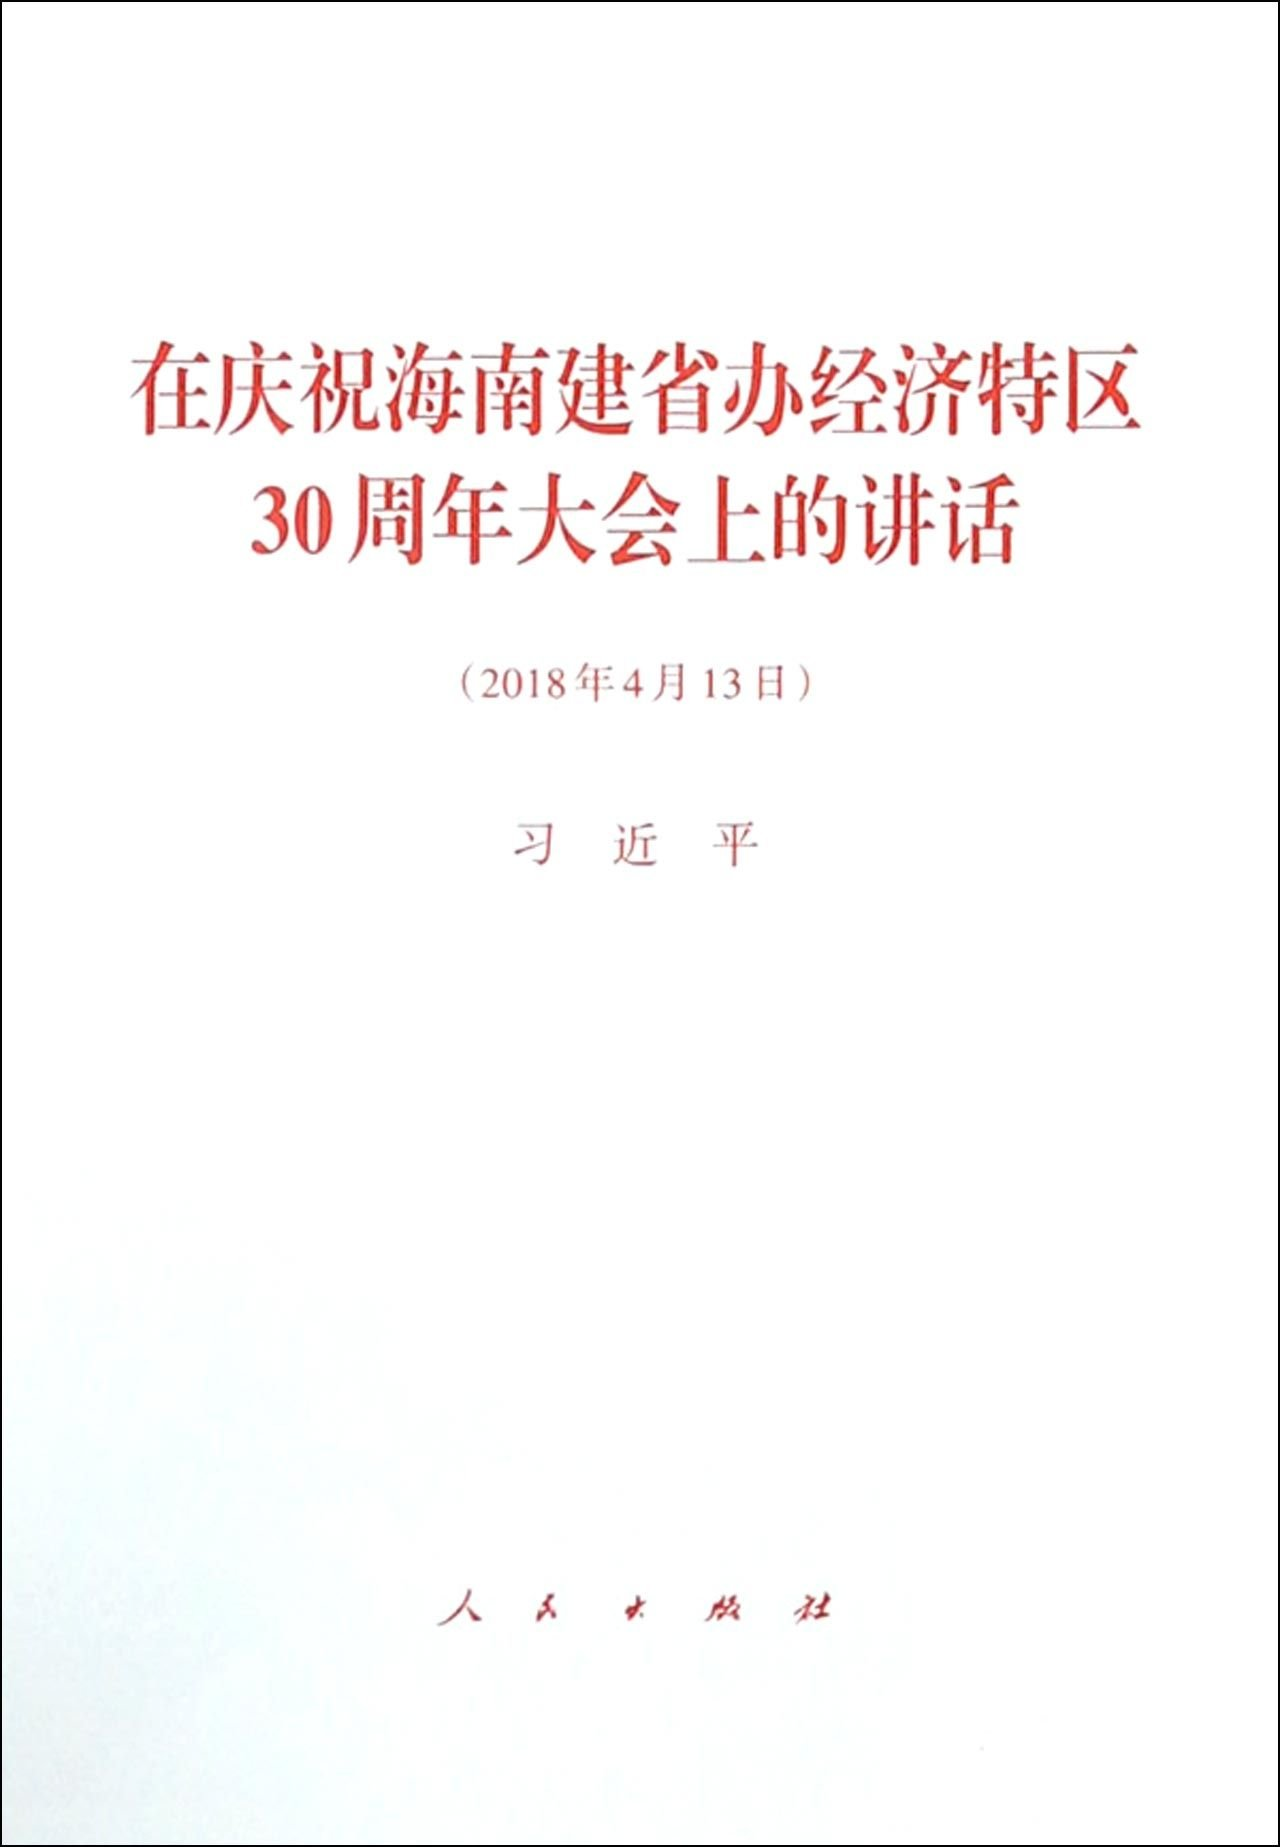 The speech by Chinese President Xi Jinping at the celebration of the 30th anniversary of the founding of Hainan Province and the Hainan Special Economic Zone (Chinese Edition) ebook